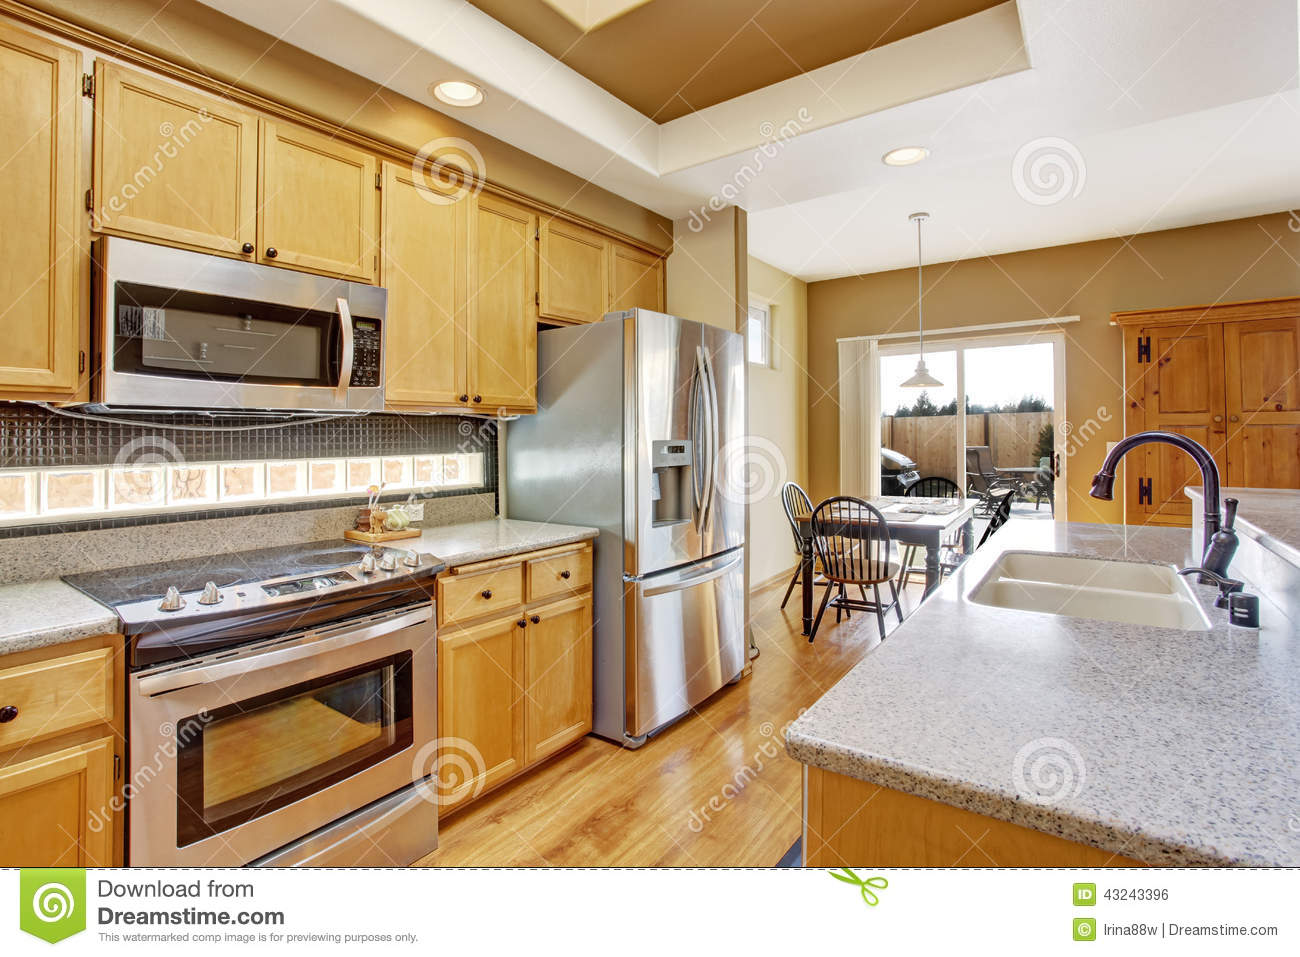 Kitchen room with skylight and dining area stock photo for Small kitchen with dining area